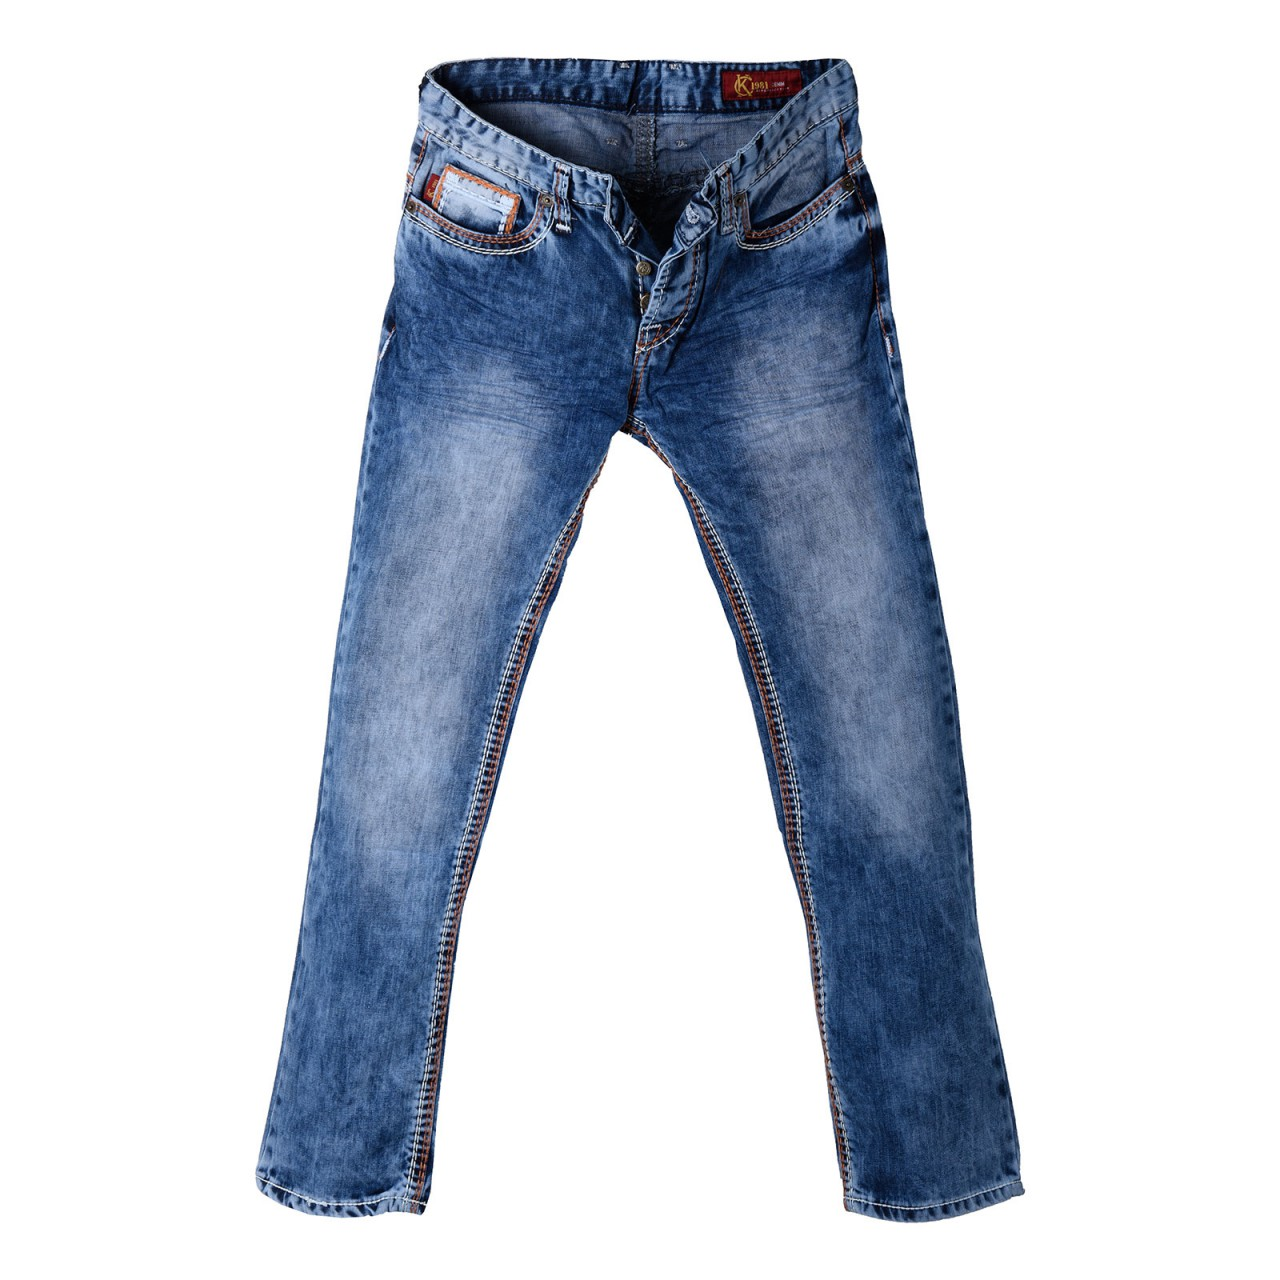 Mens Jeans Used Look with orange XXL seams